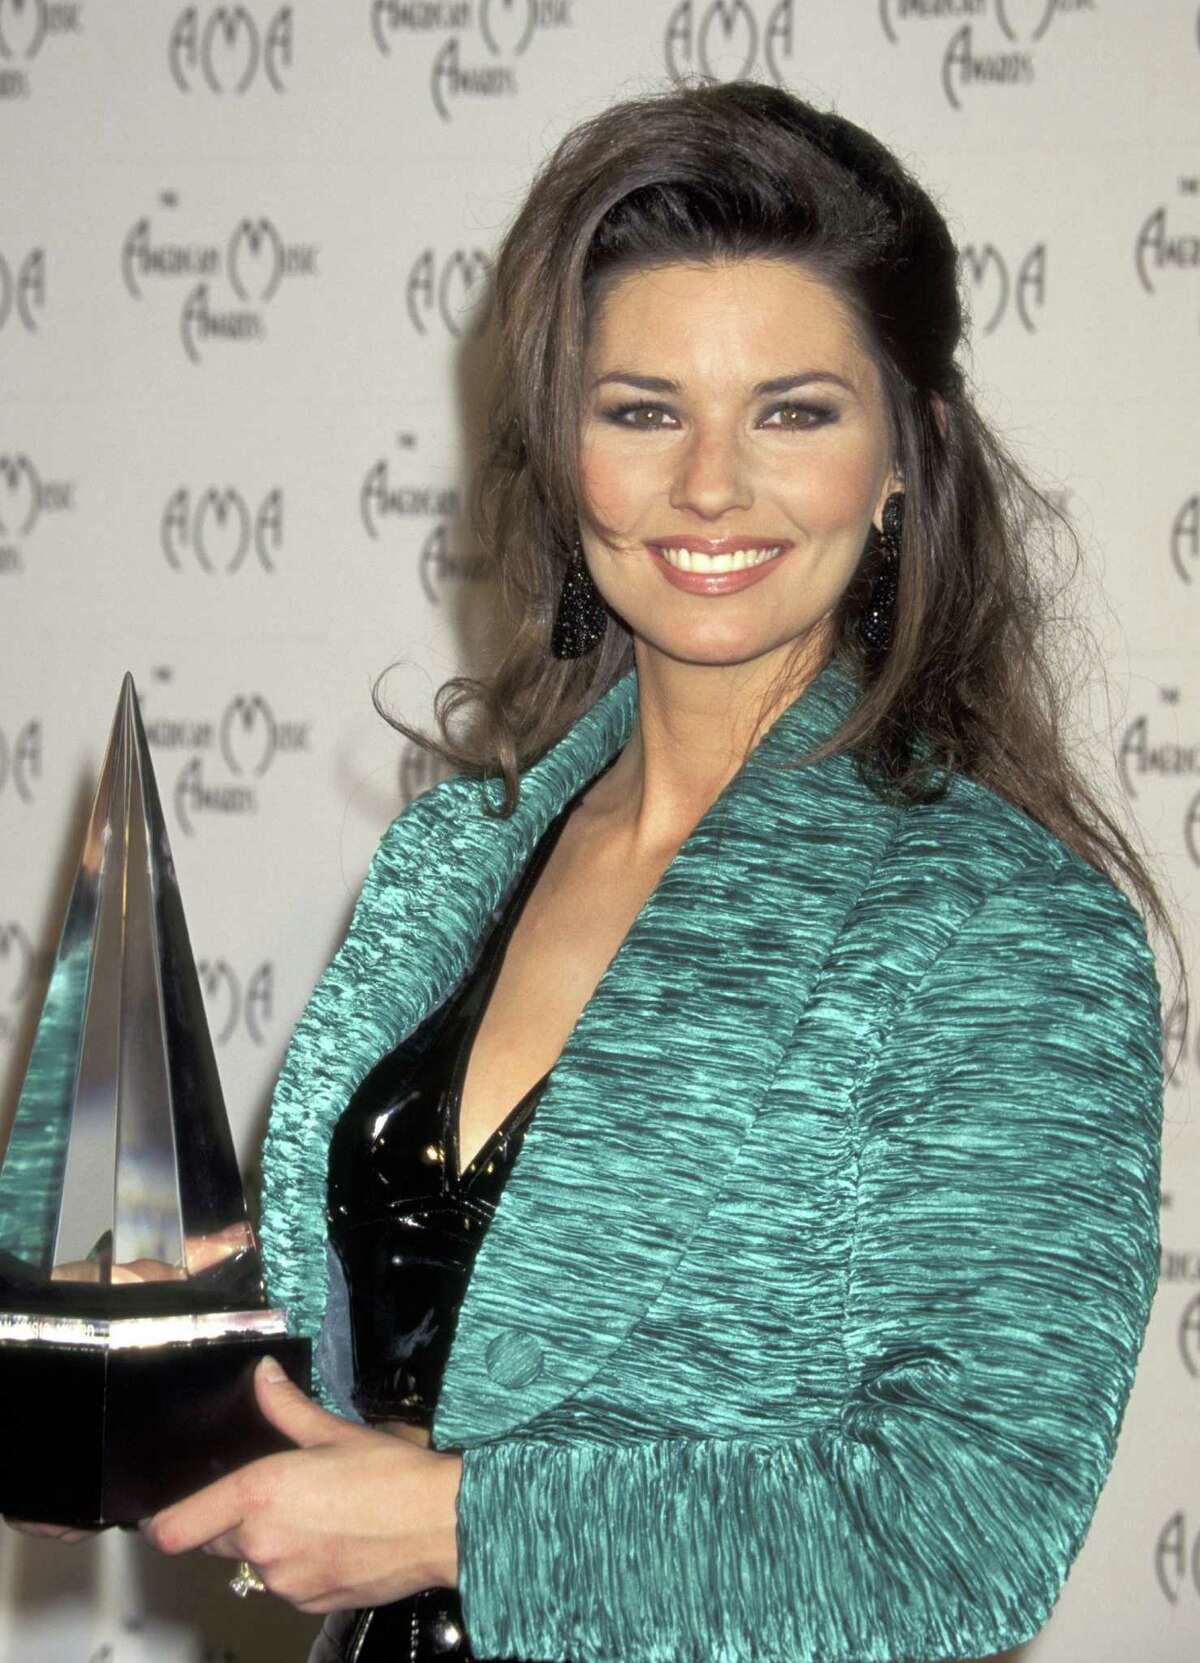 Shania Twain during the American Music Awards in Los Angeles, 1996.